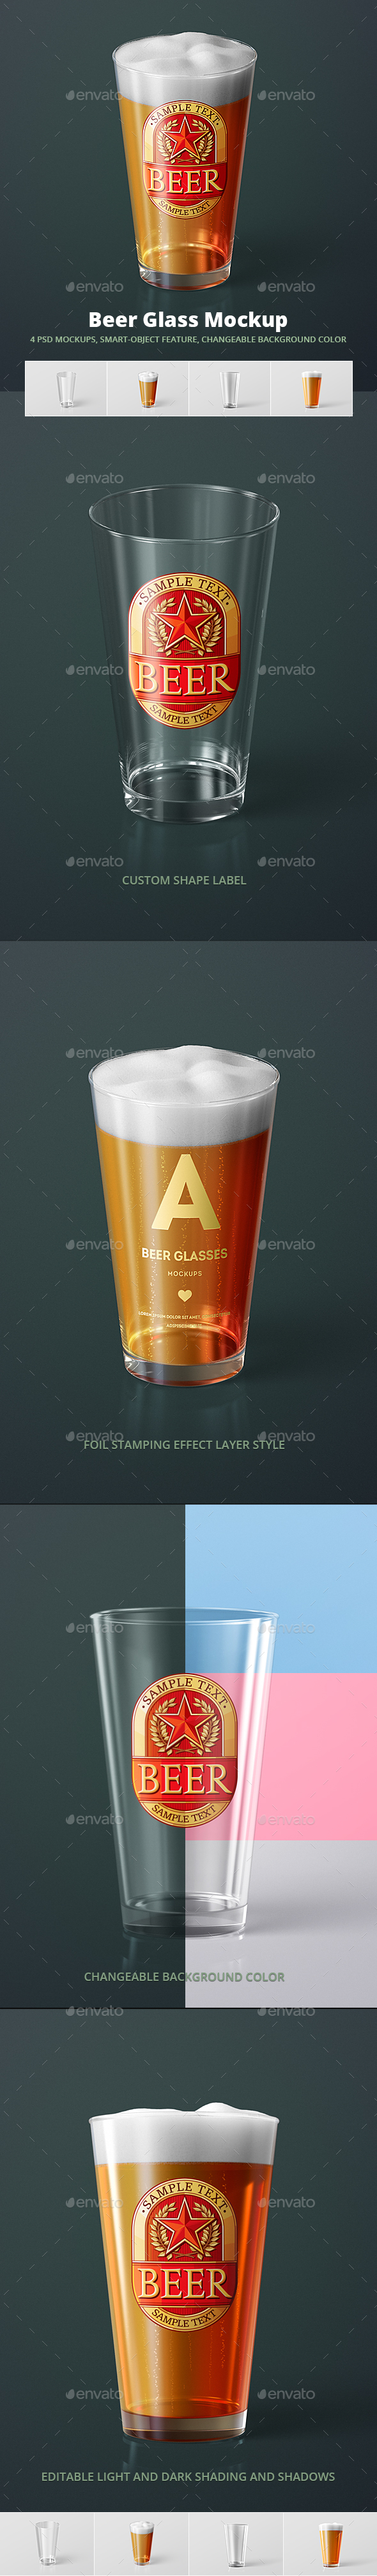 Beer Glass Mock-up - American Pint - Food and Drink Packaging